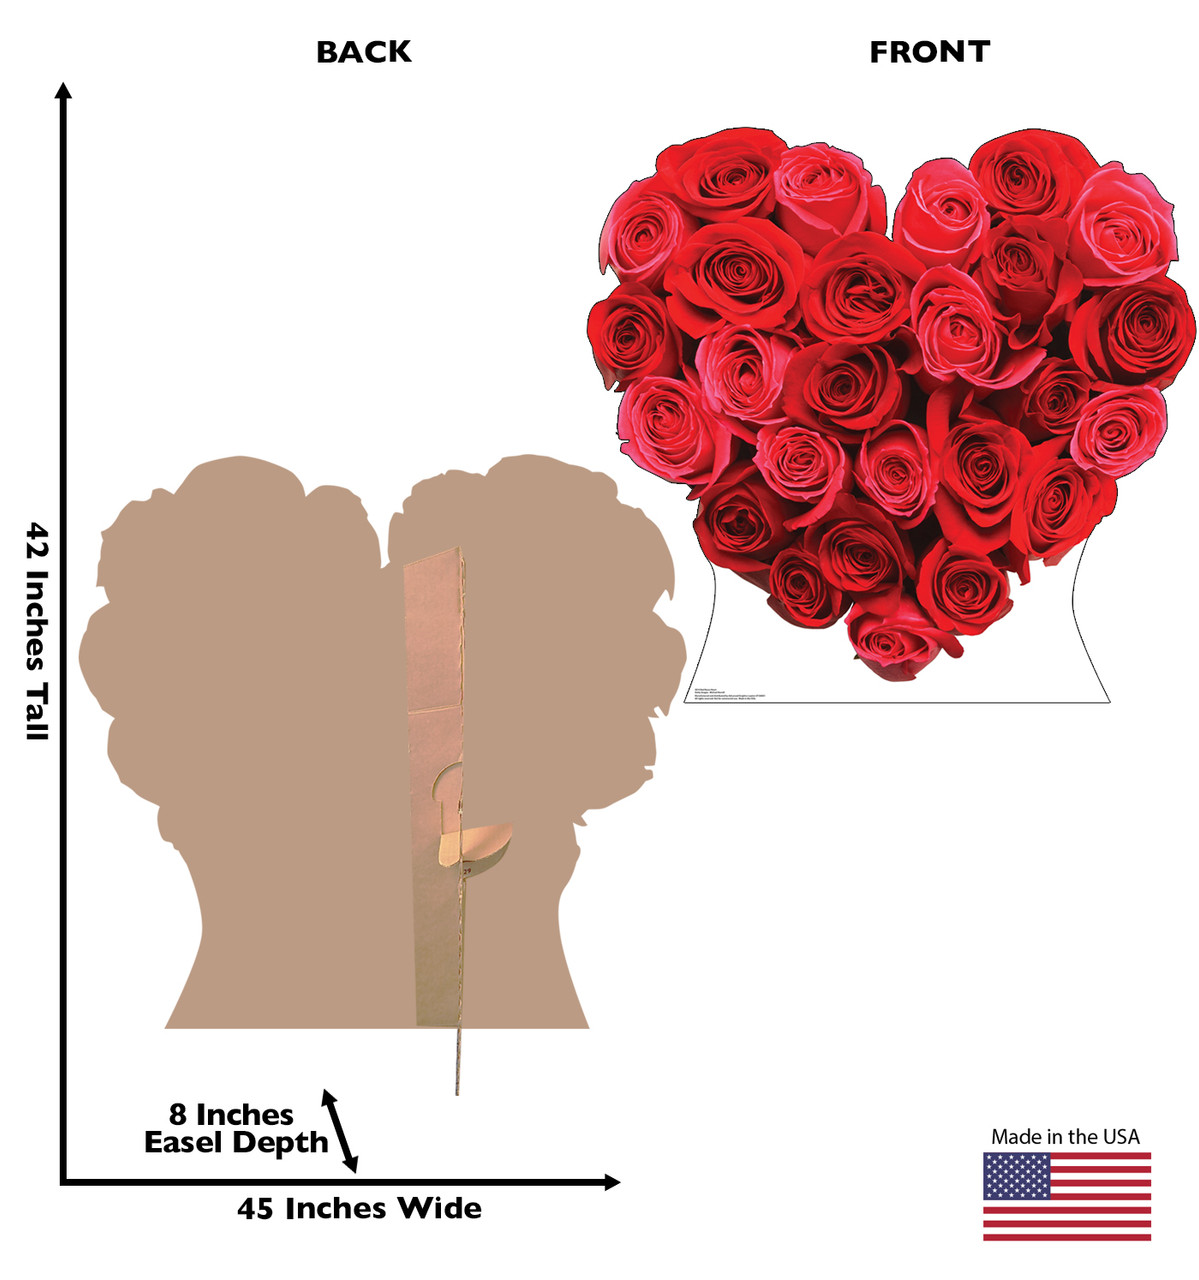 Life-size cardboard standee of Red Roses Heart Front and Back View